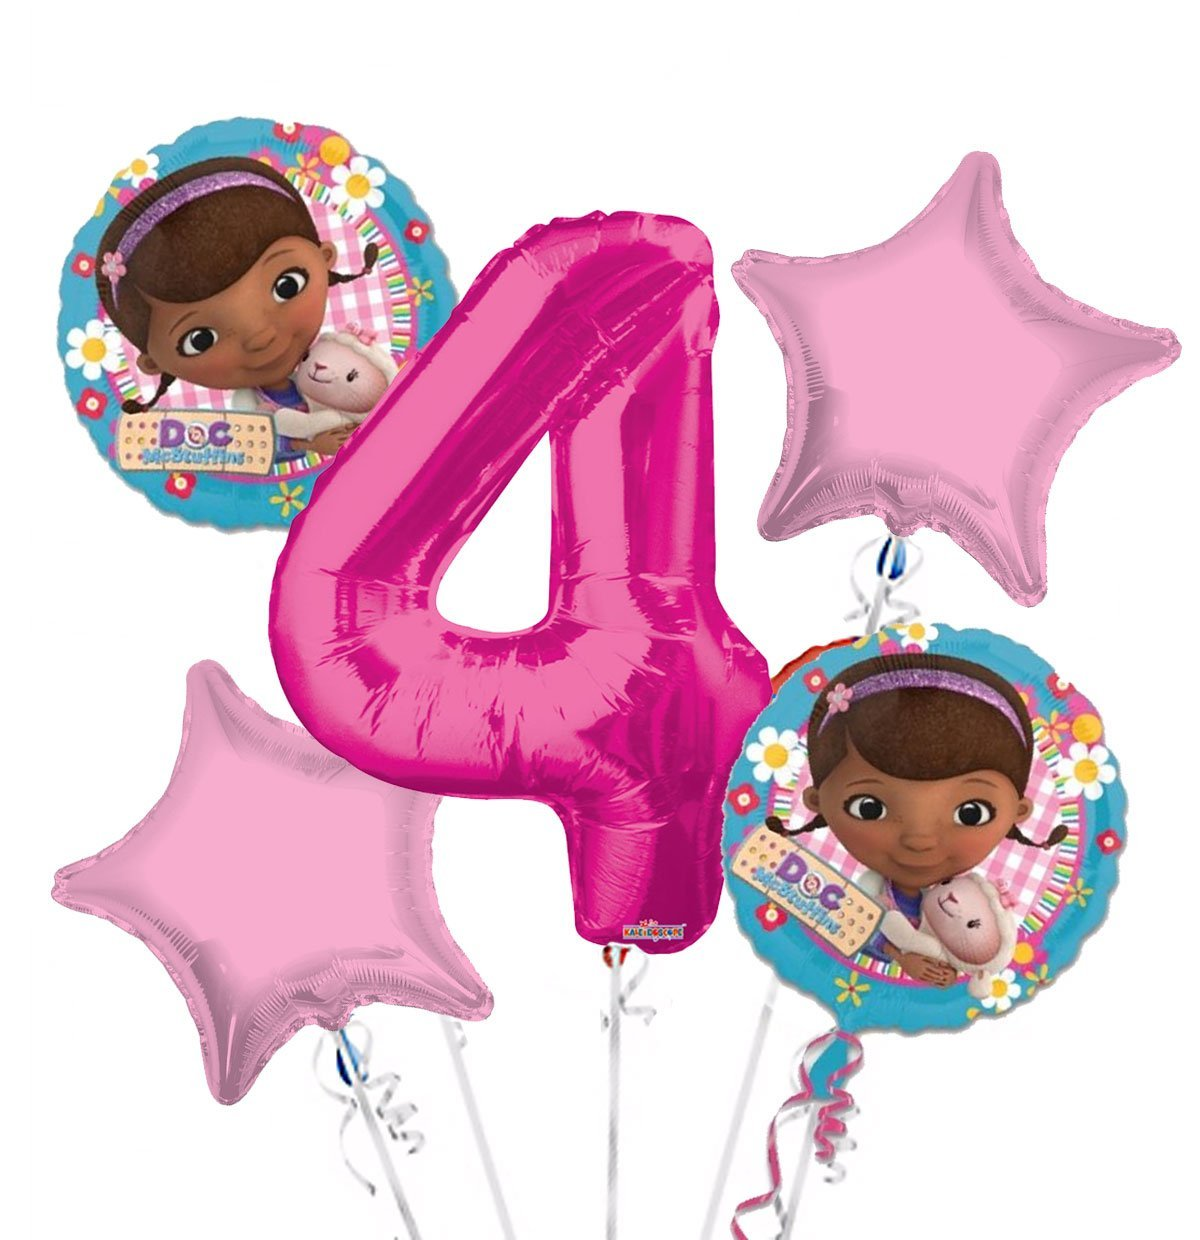 Doc McStuffins Balloon Bouquet 4th Birthday 5 pcs - Party Supplies, 1 Giant Number 4 Balloon, 34in By Viva Party